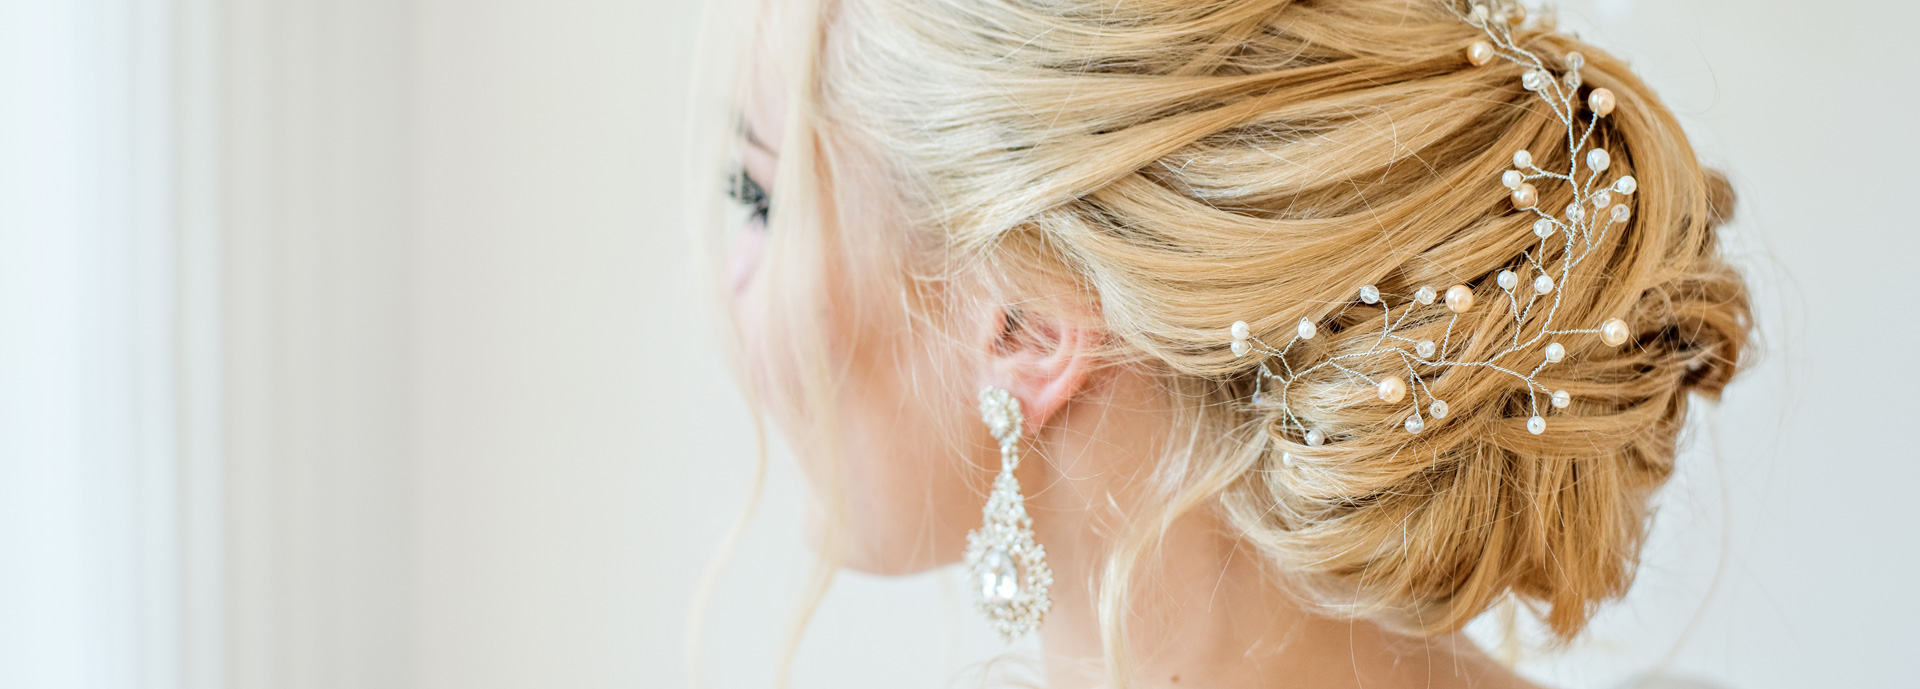 Wedding hair and makeup Herffordshire